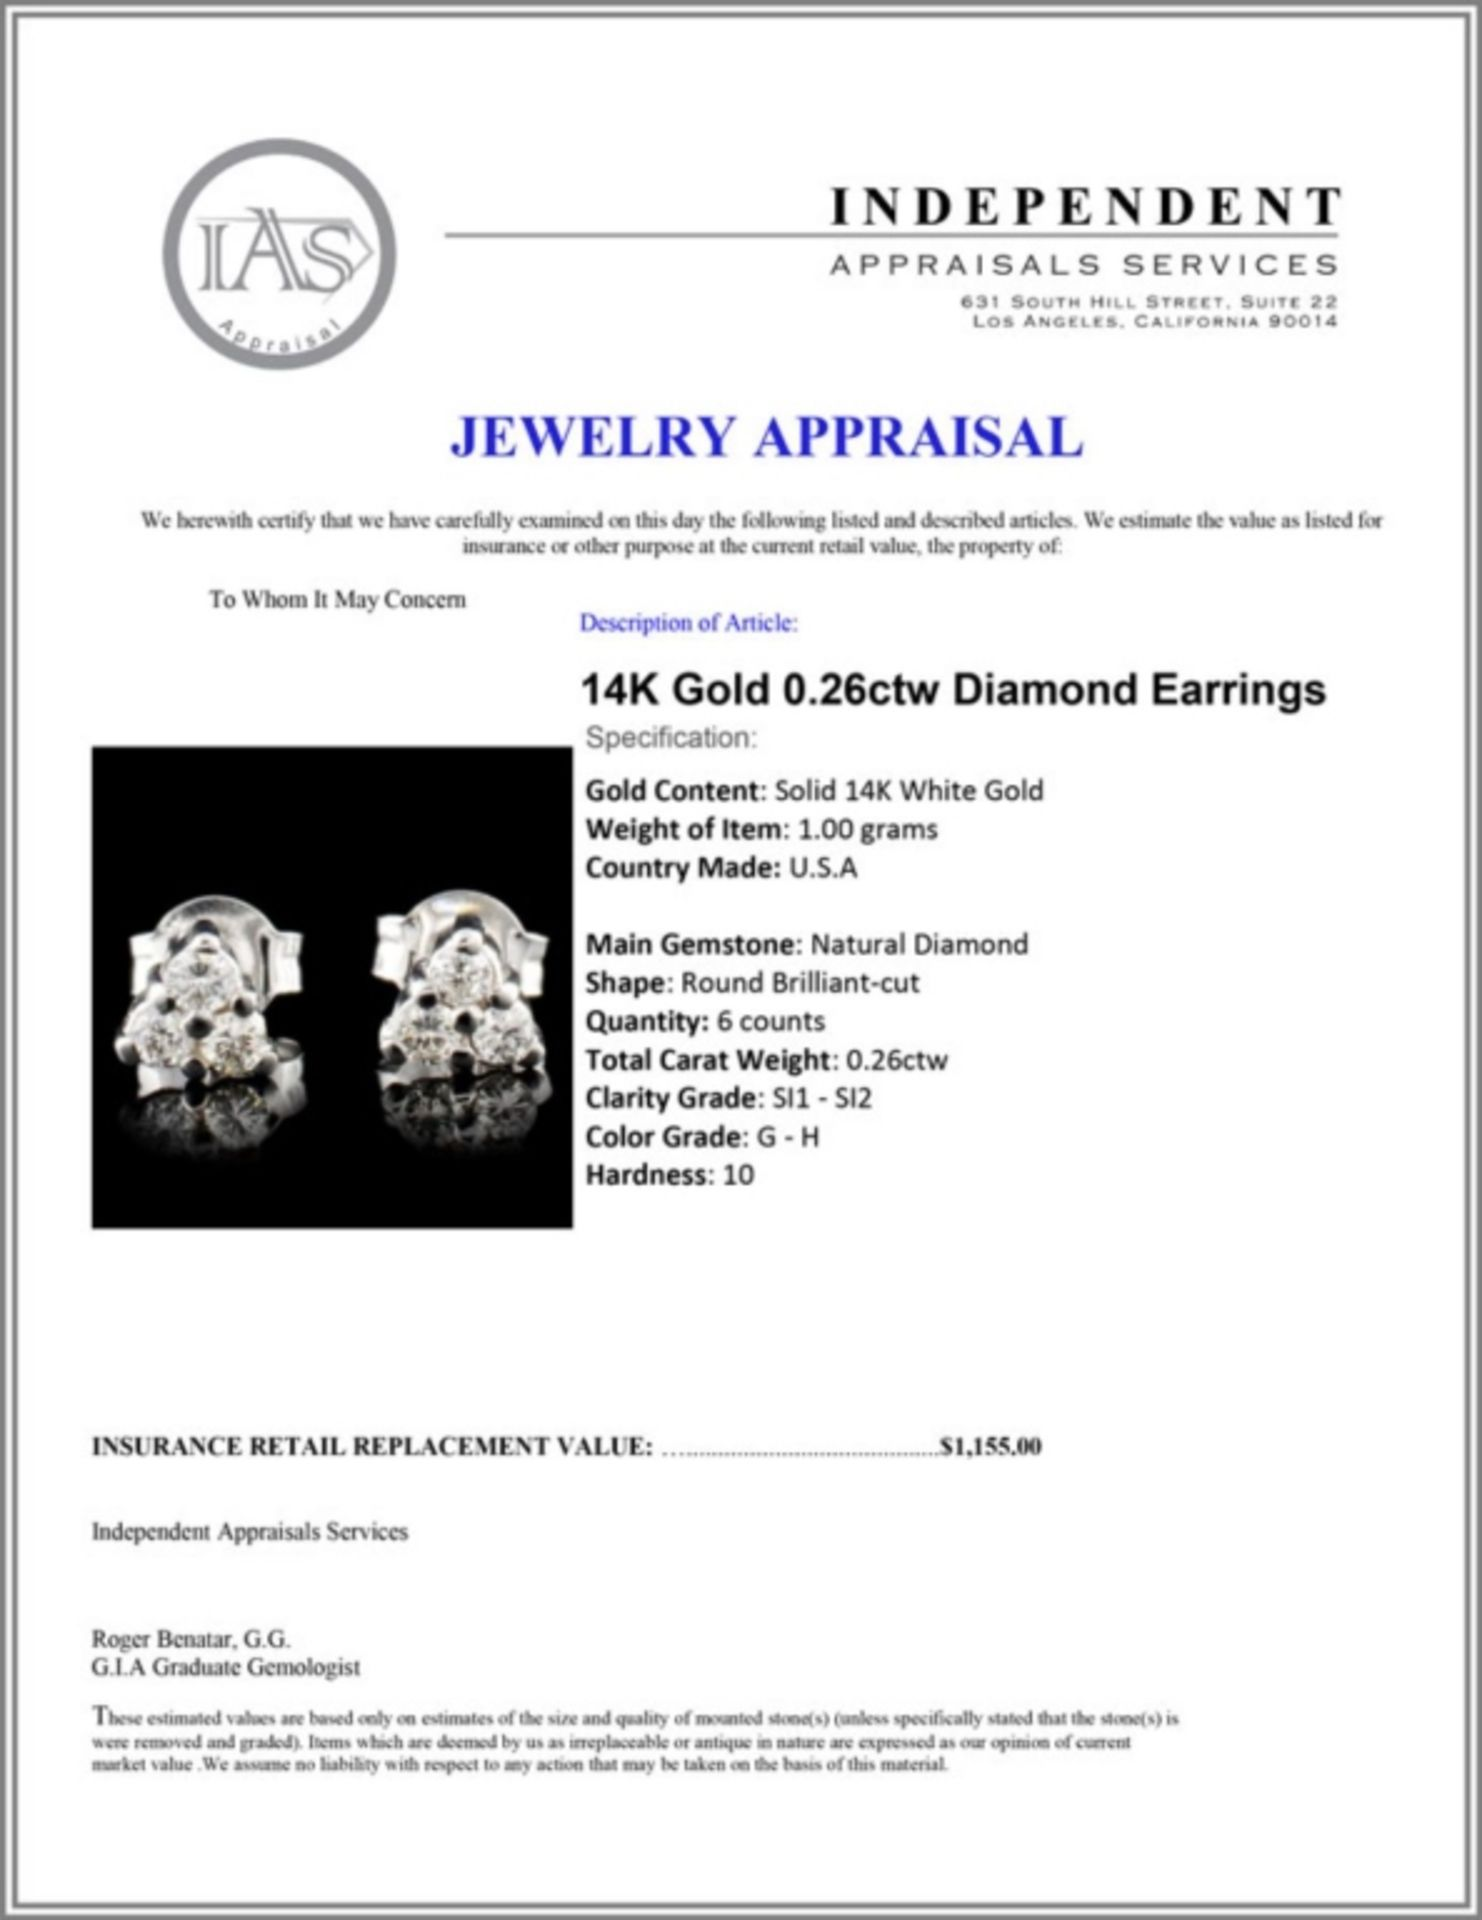 14K Gold 0.26ctw Diamond Earrings - Image 3 of 3